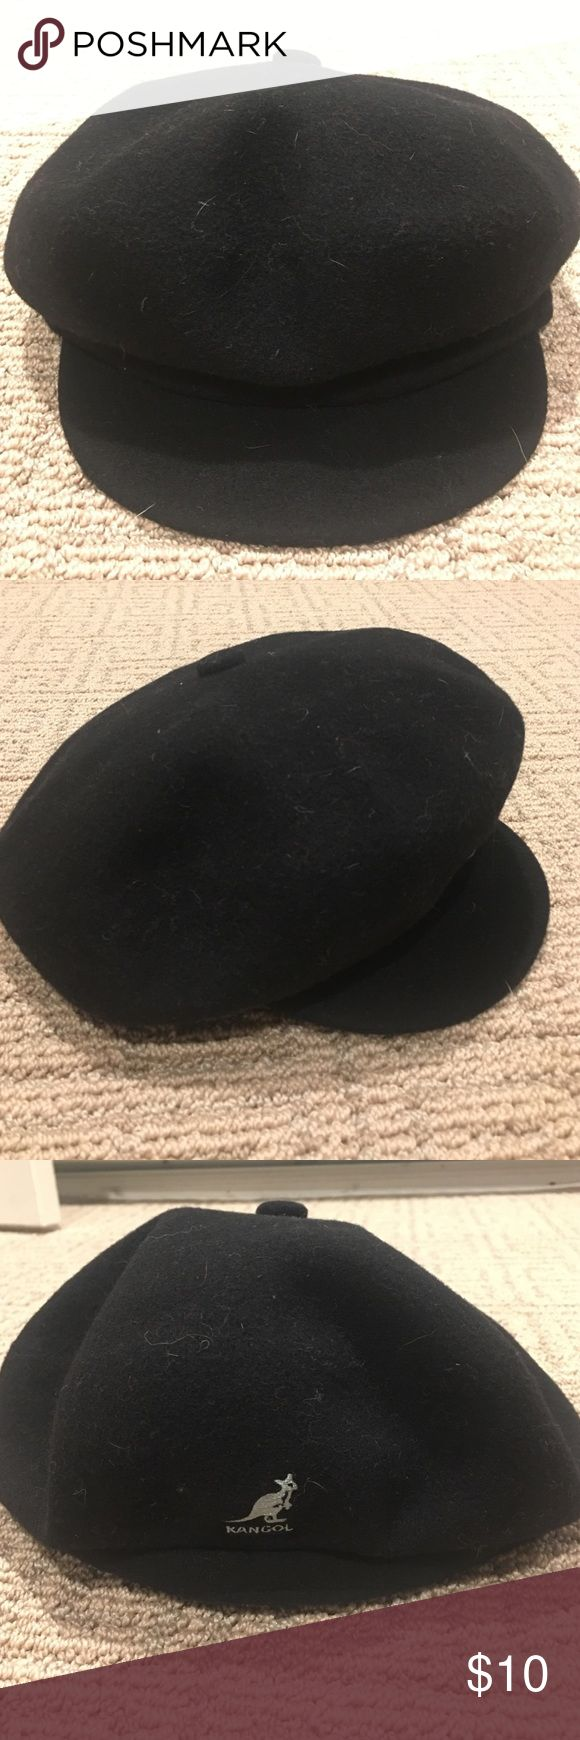 """Kangol """"newsboy"""" black wool cap This black wool Kangol cap can be worn with the brim facing forward or backwards to switch up your look!! Unlined but has an interior band for comfort. Kangol Accessories Hats"""